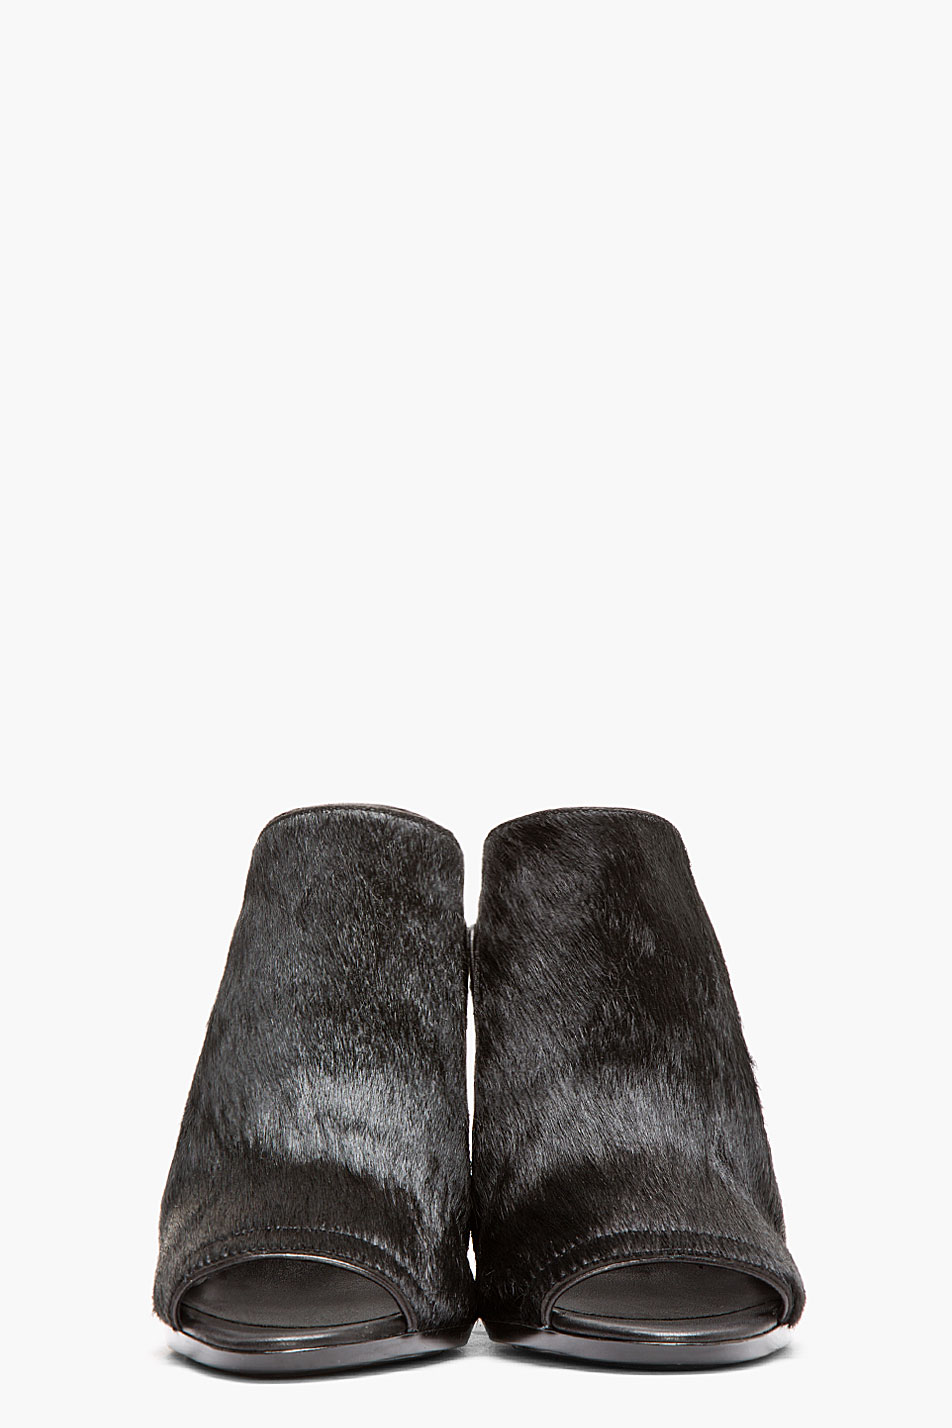 3.1 Phillip Lim Pony-hair Mule